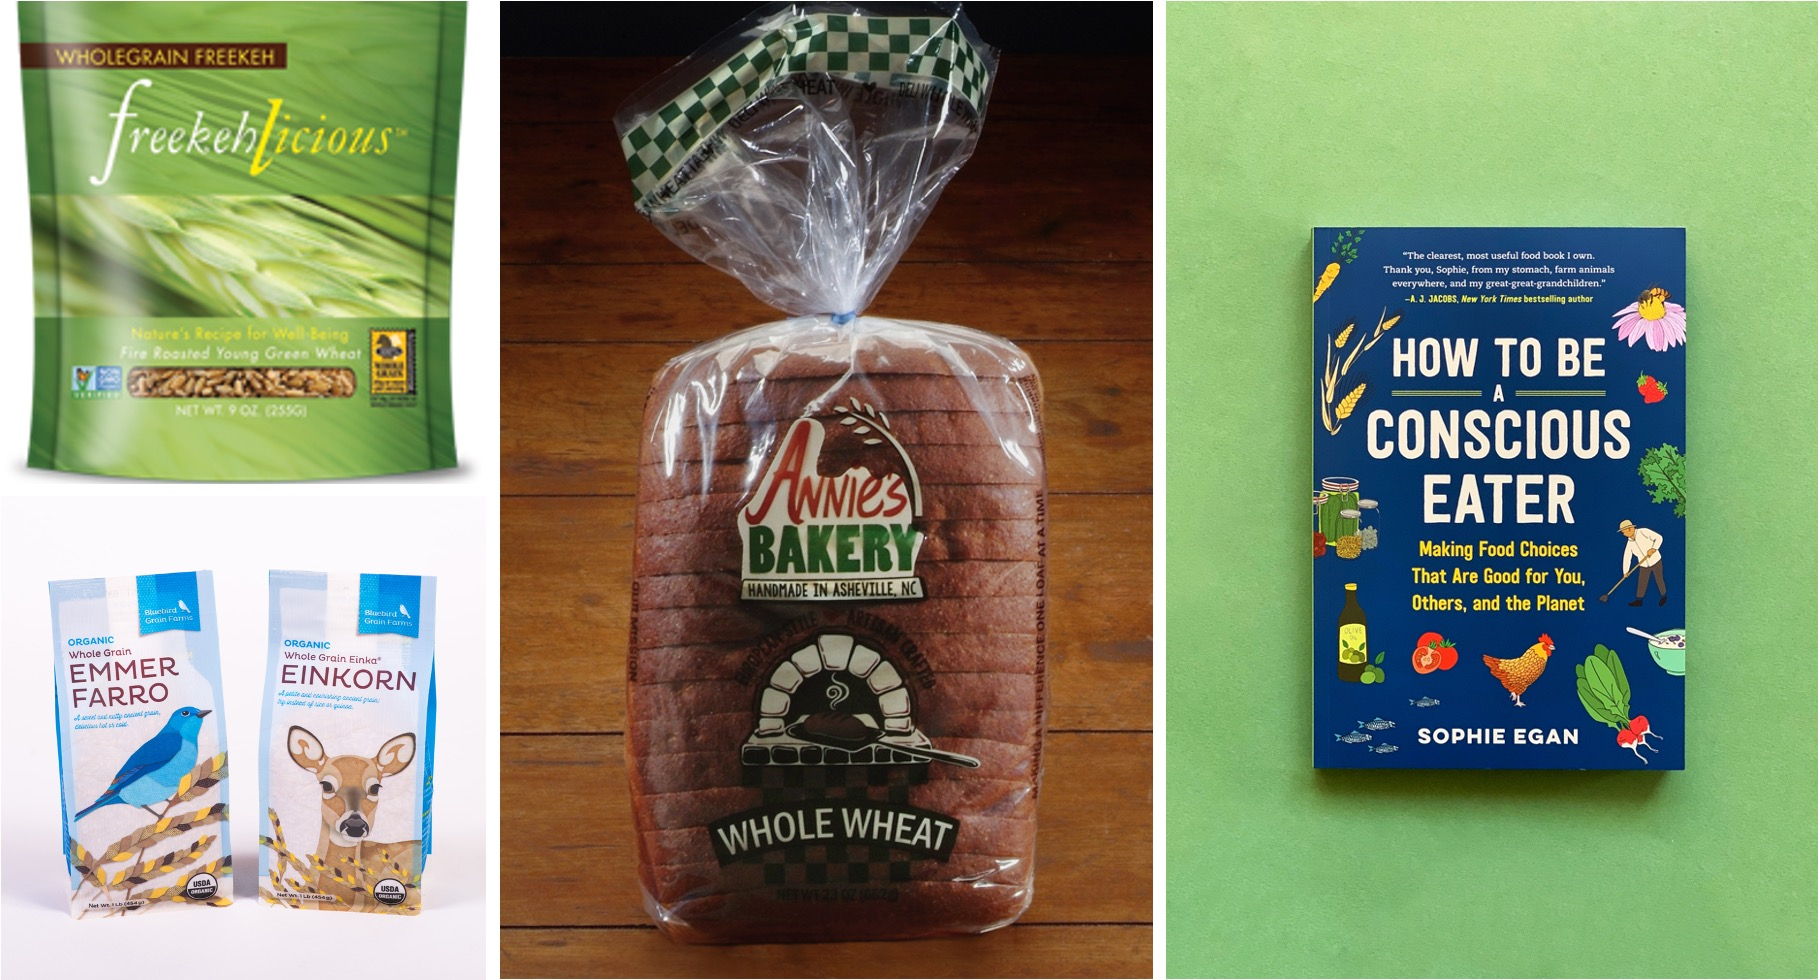 Examples of some of the prizes: intact grains, bread, a book